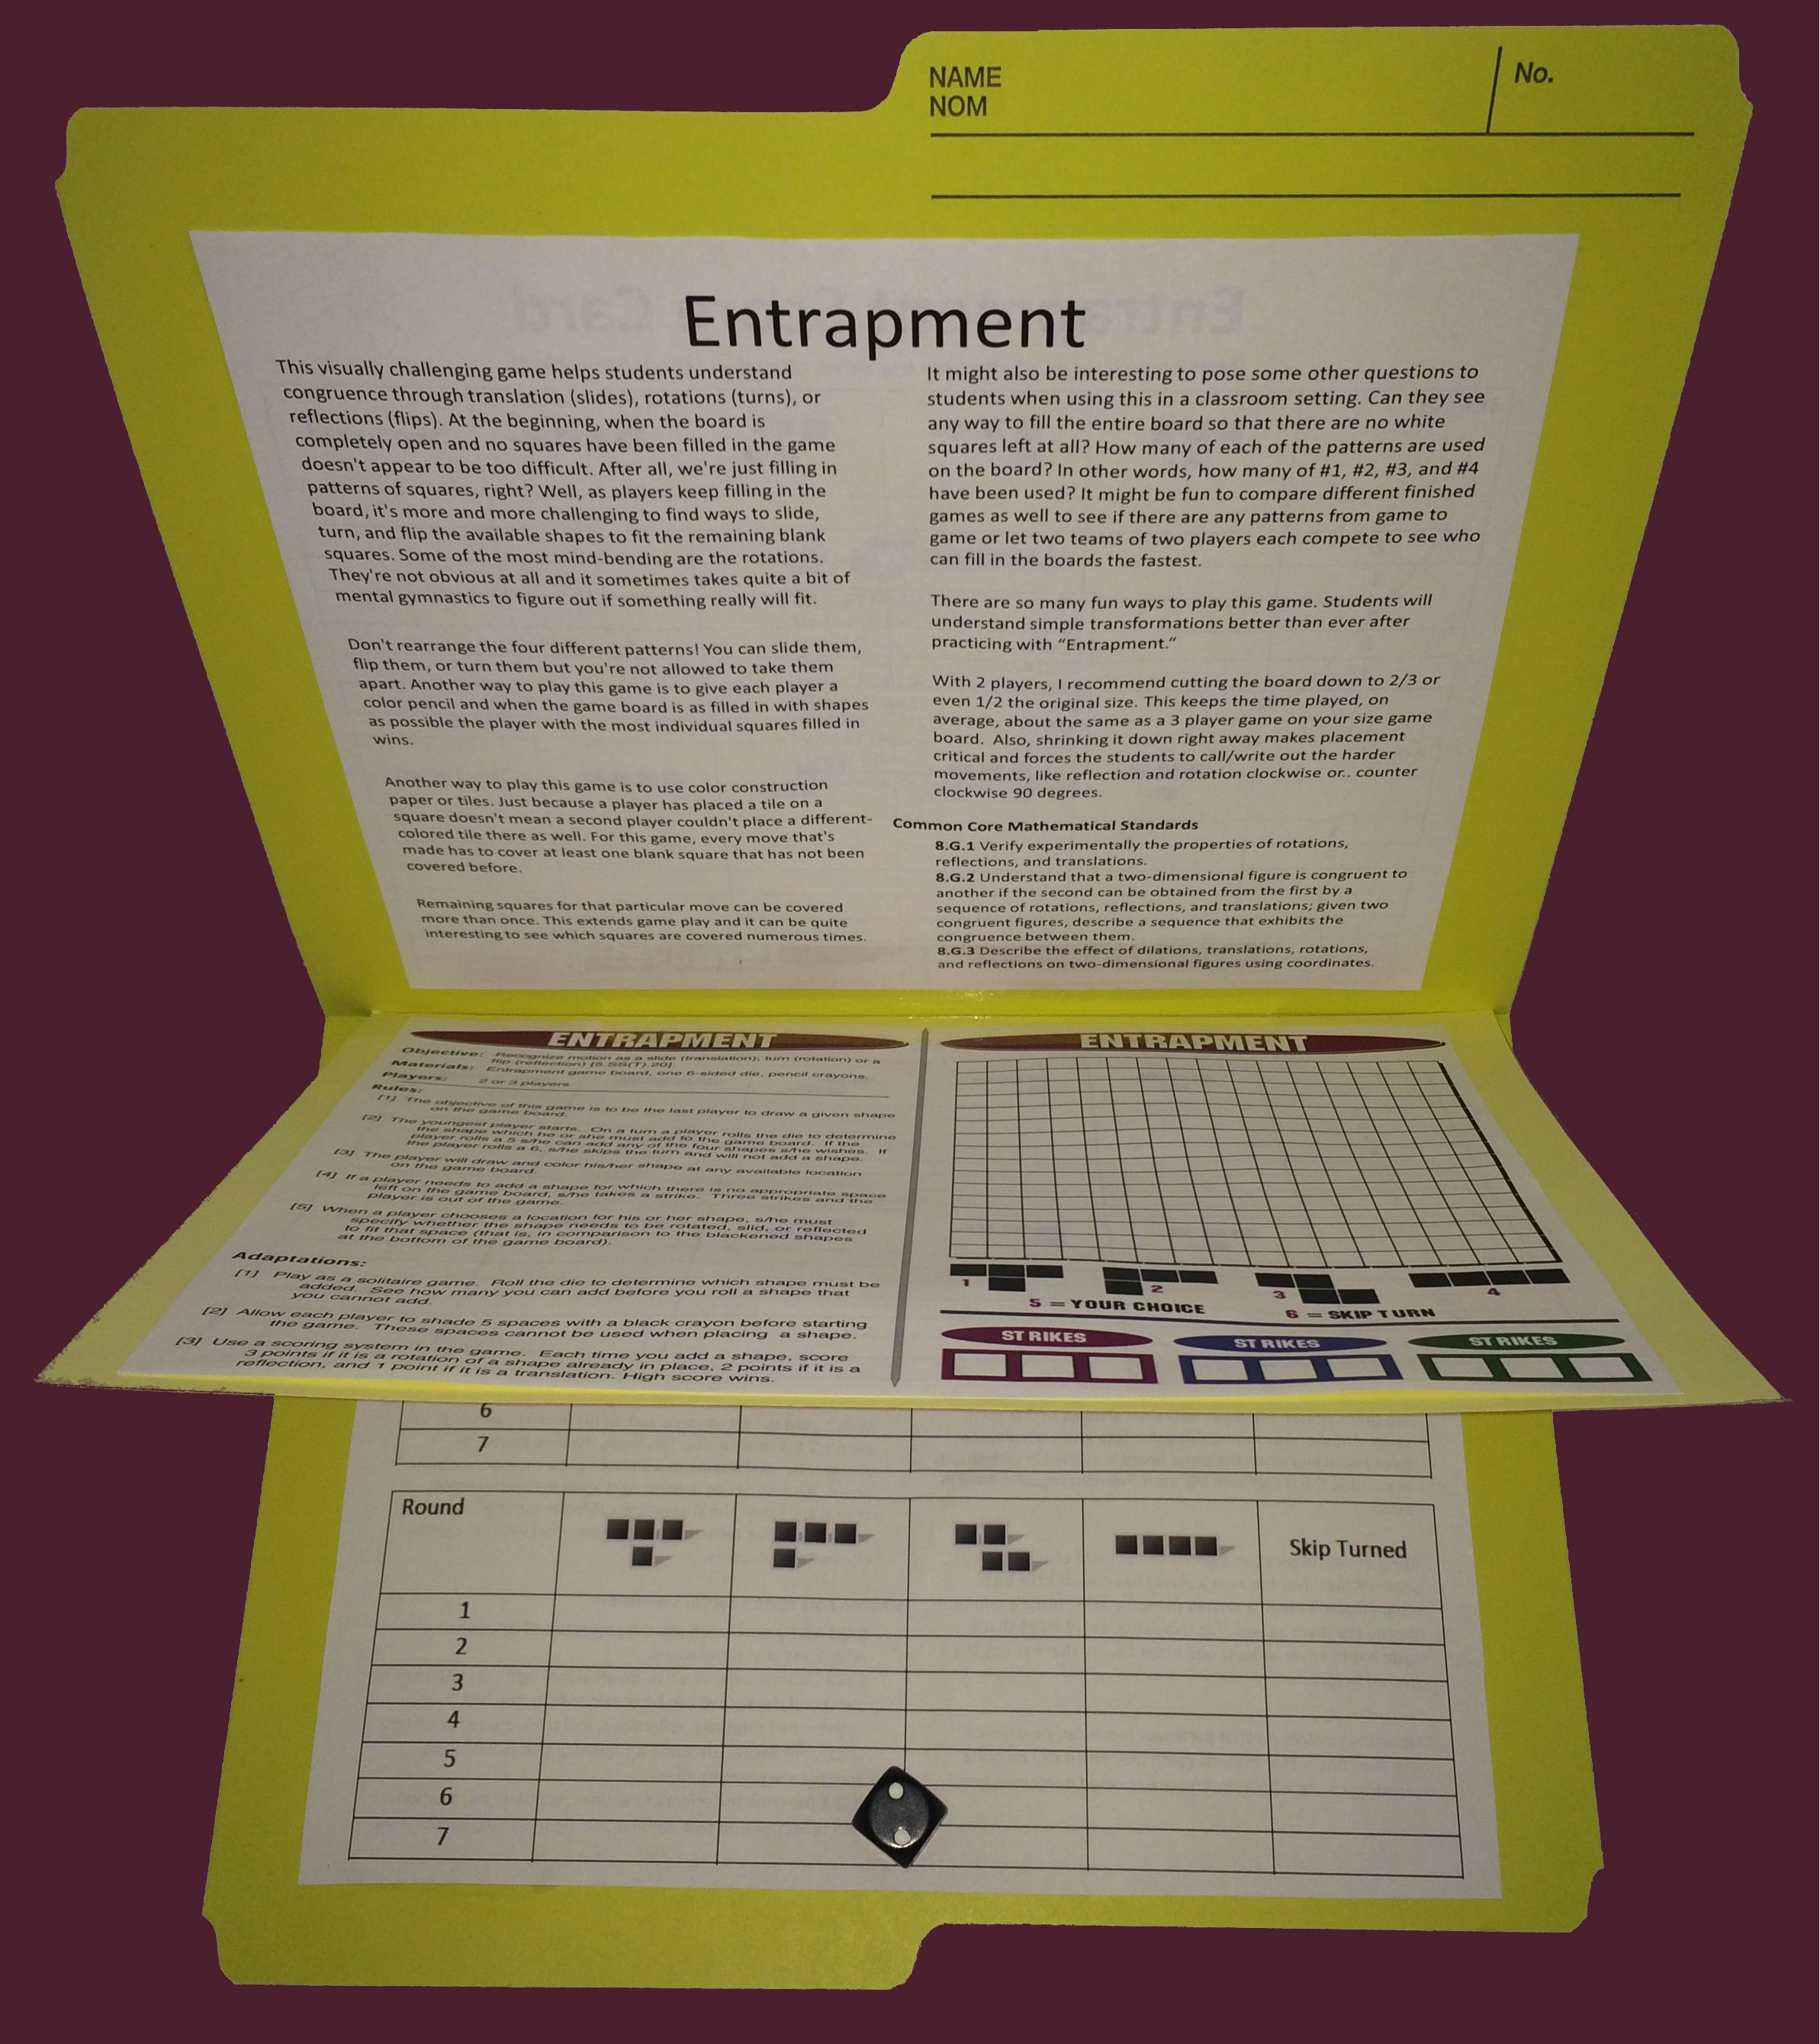 graphic regarding Middle School Math Games Printable referred to as Printable Math Online games Centre university math 6th quality math